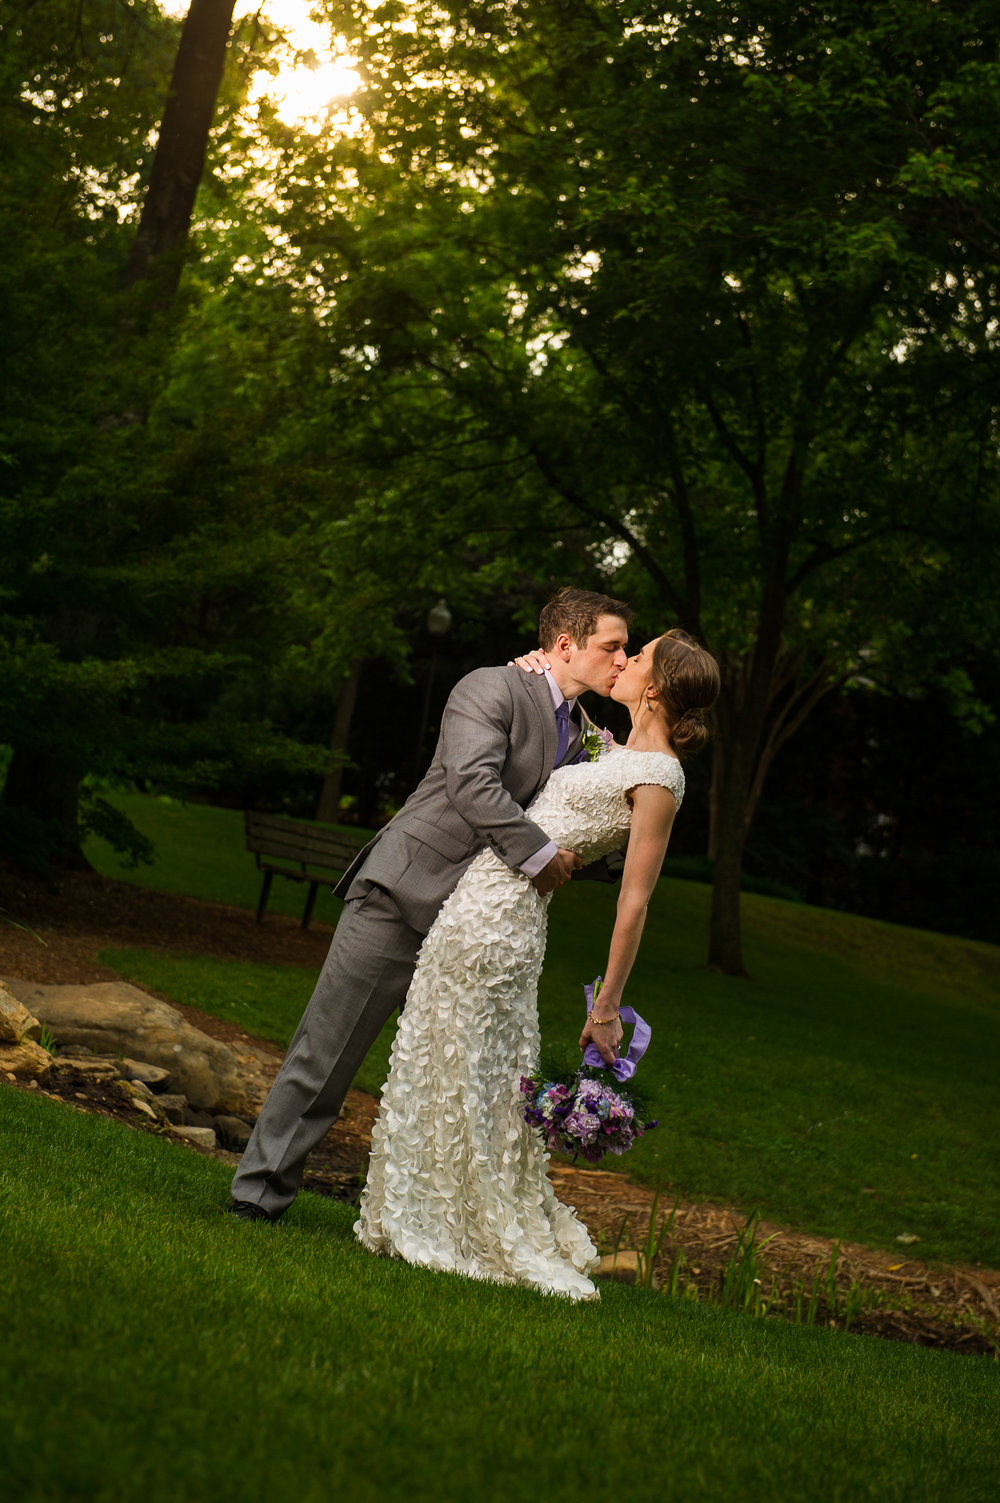 Irmo Park Wedding-24.jpg